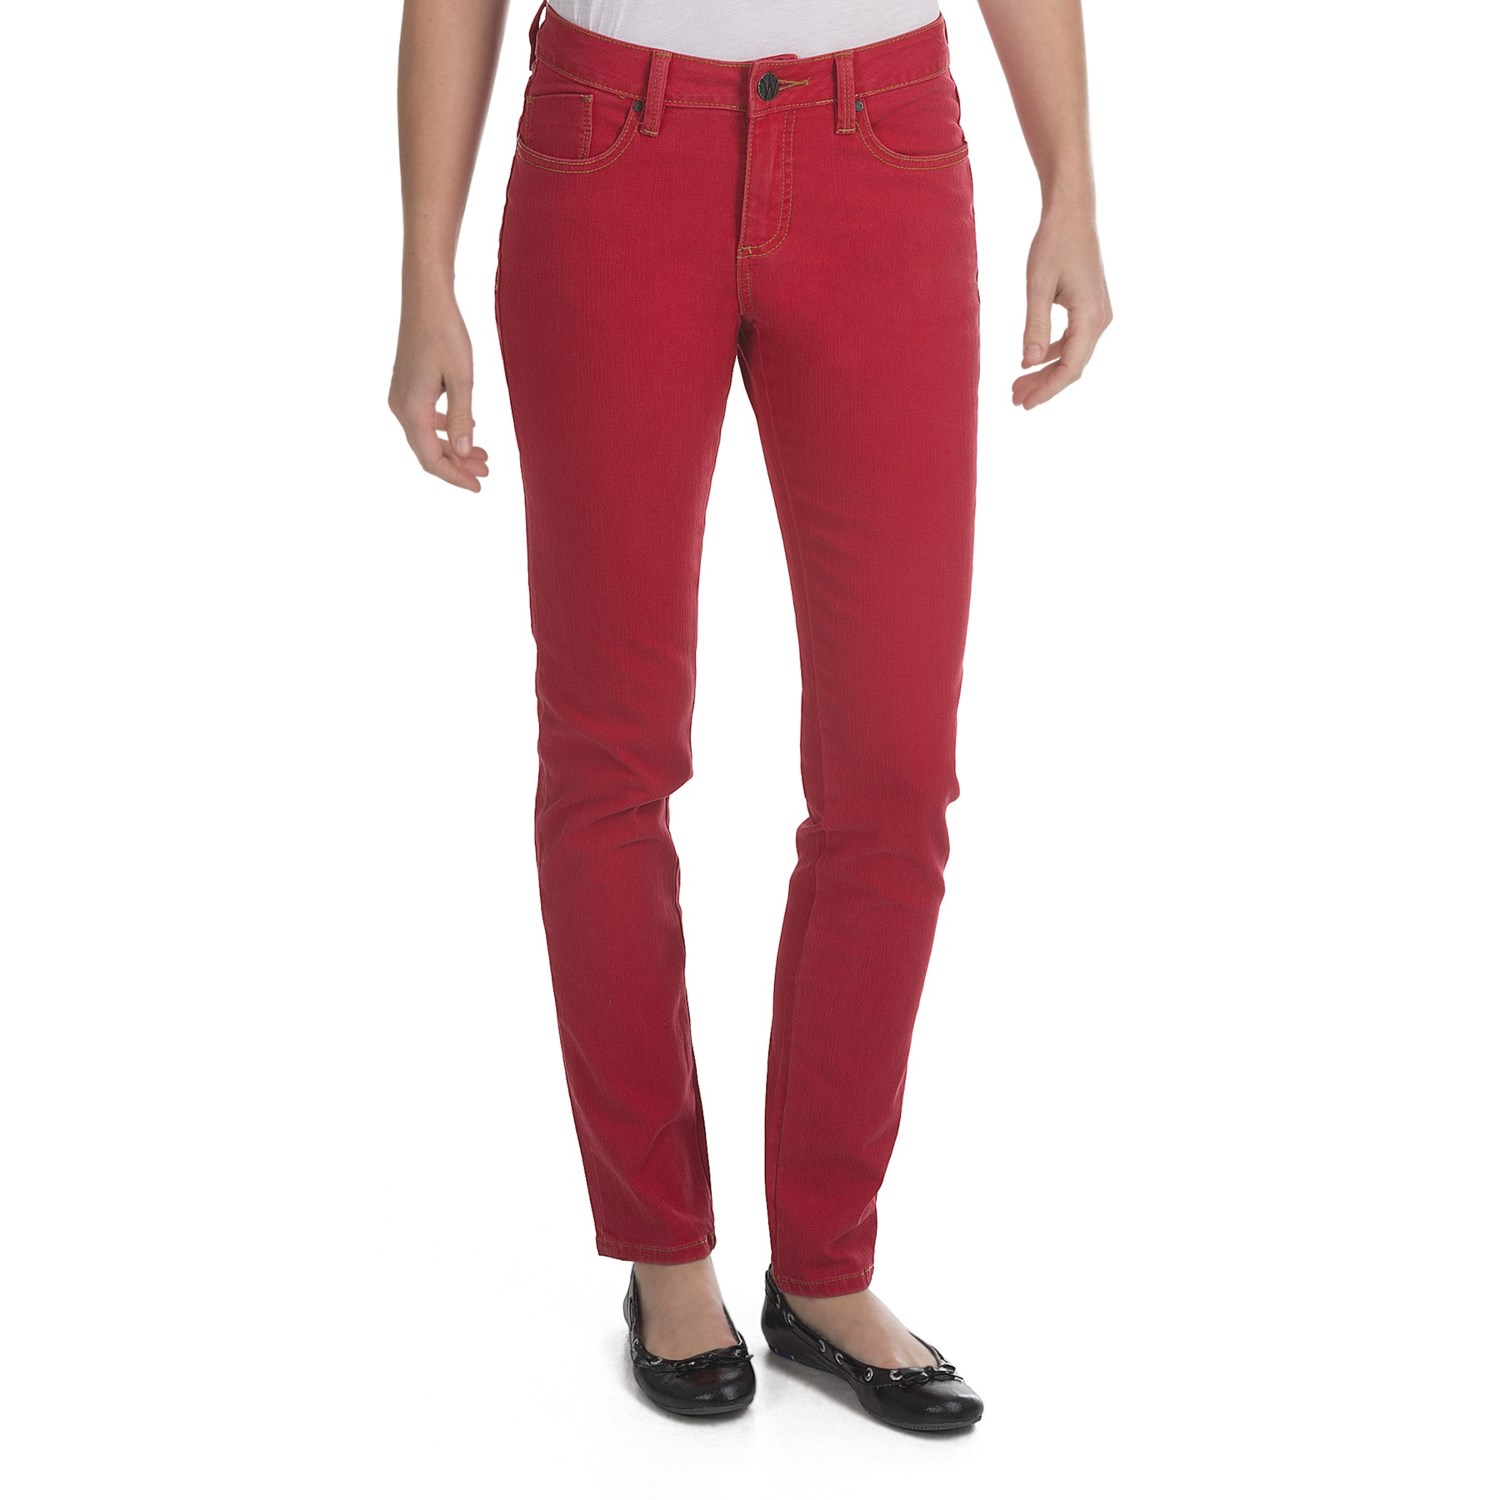 Discover Women's Red Skinny Jeans and Juniors Red Skinny Jeans when you shop at Macy's. Macy's Presents: The Edit - A curated mix of fashion and inspiration Check It Out Free Shipping with $99 purchase + Free Store Pickup.